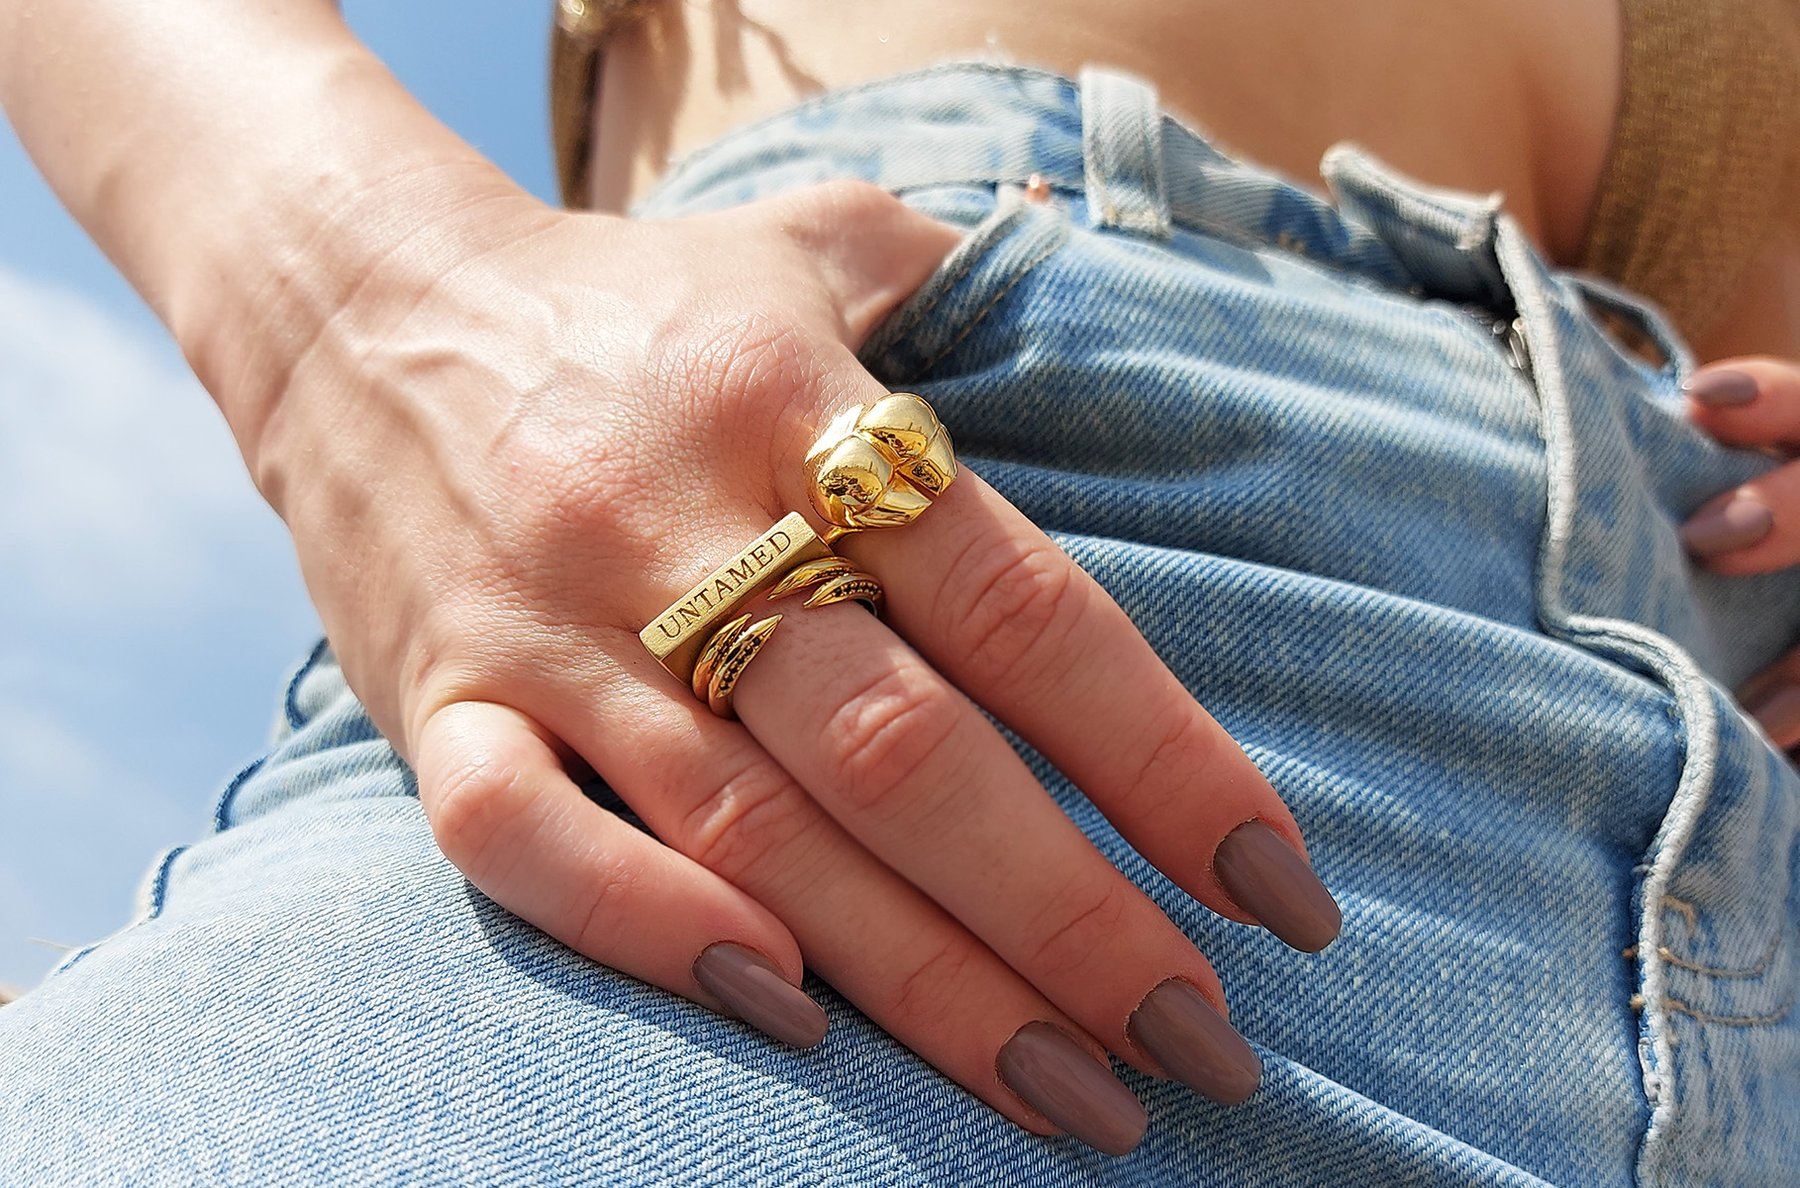 Startup Fine Jewelry Marketing from 0 to 7 figures in 6 Months